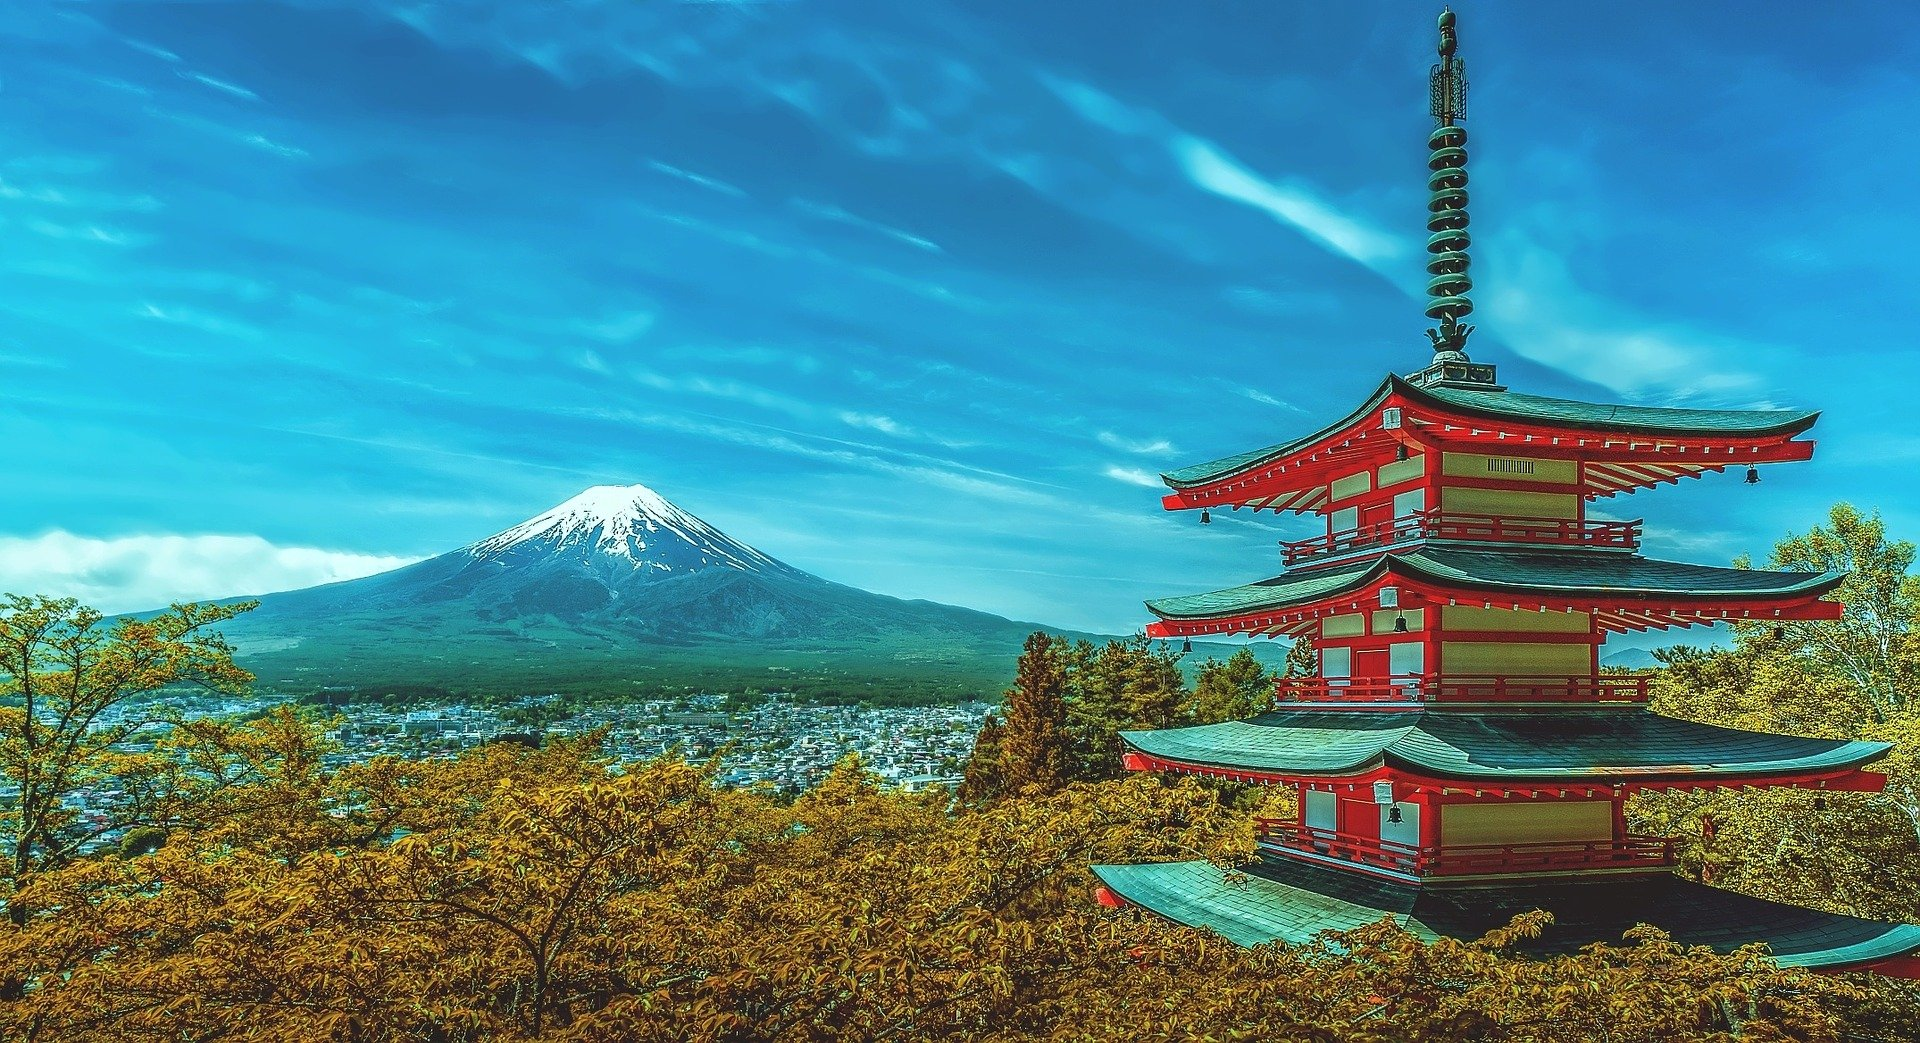 Japanese pagoda overlooked by Mount Fuji